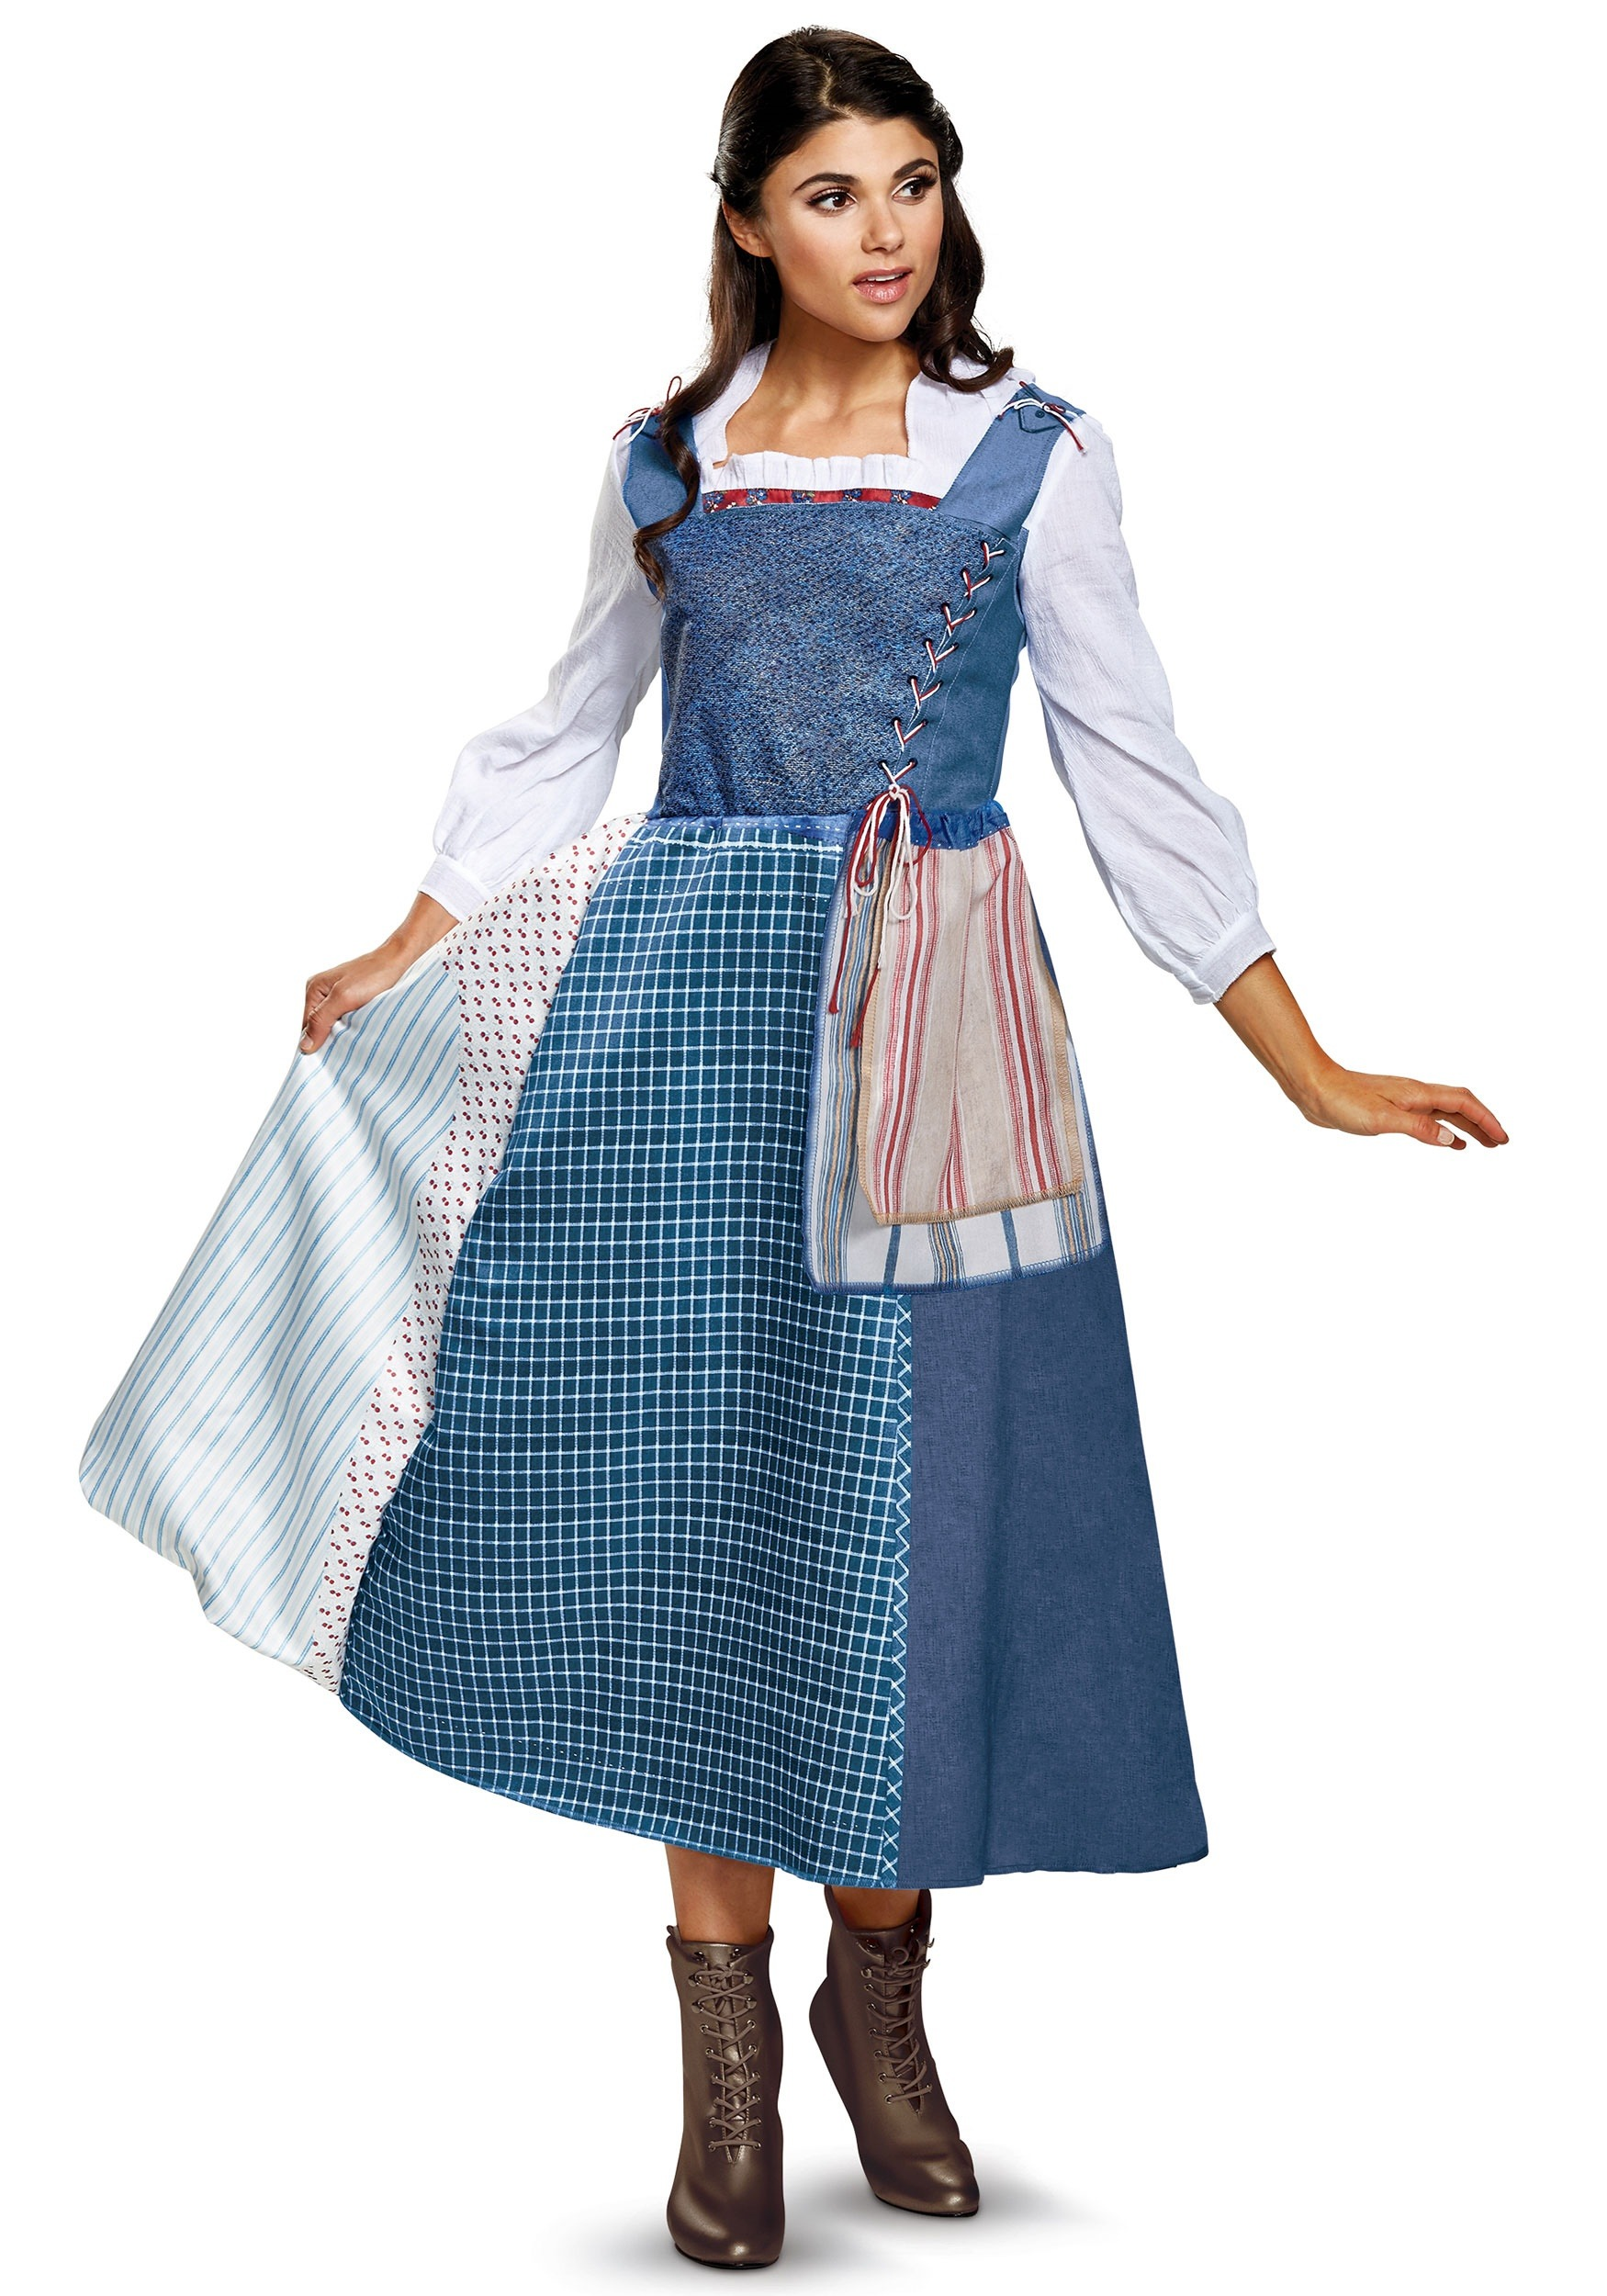 Deluxe Belle Village Provincial Blue Dress Women's Costume Beauty and the Beast new live action movie design